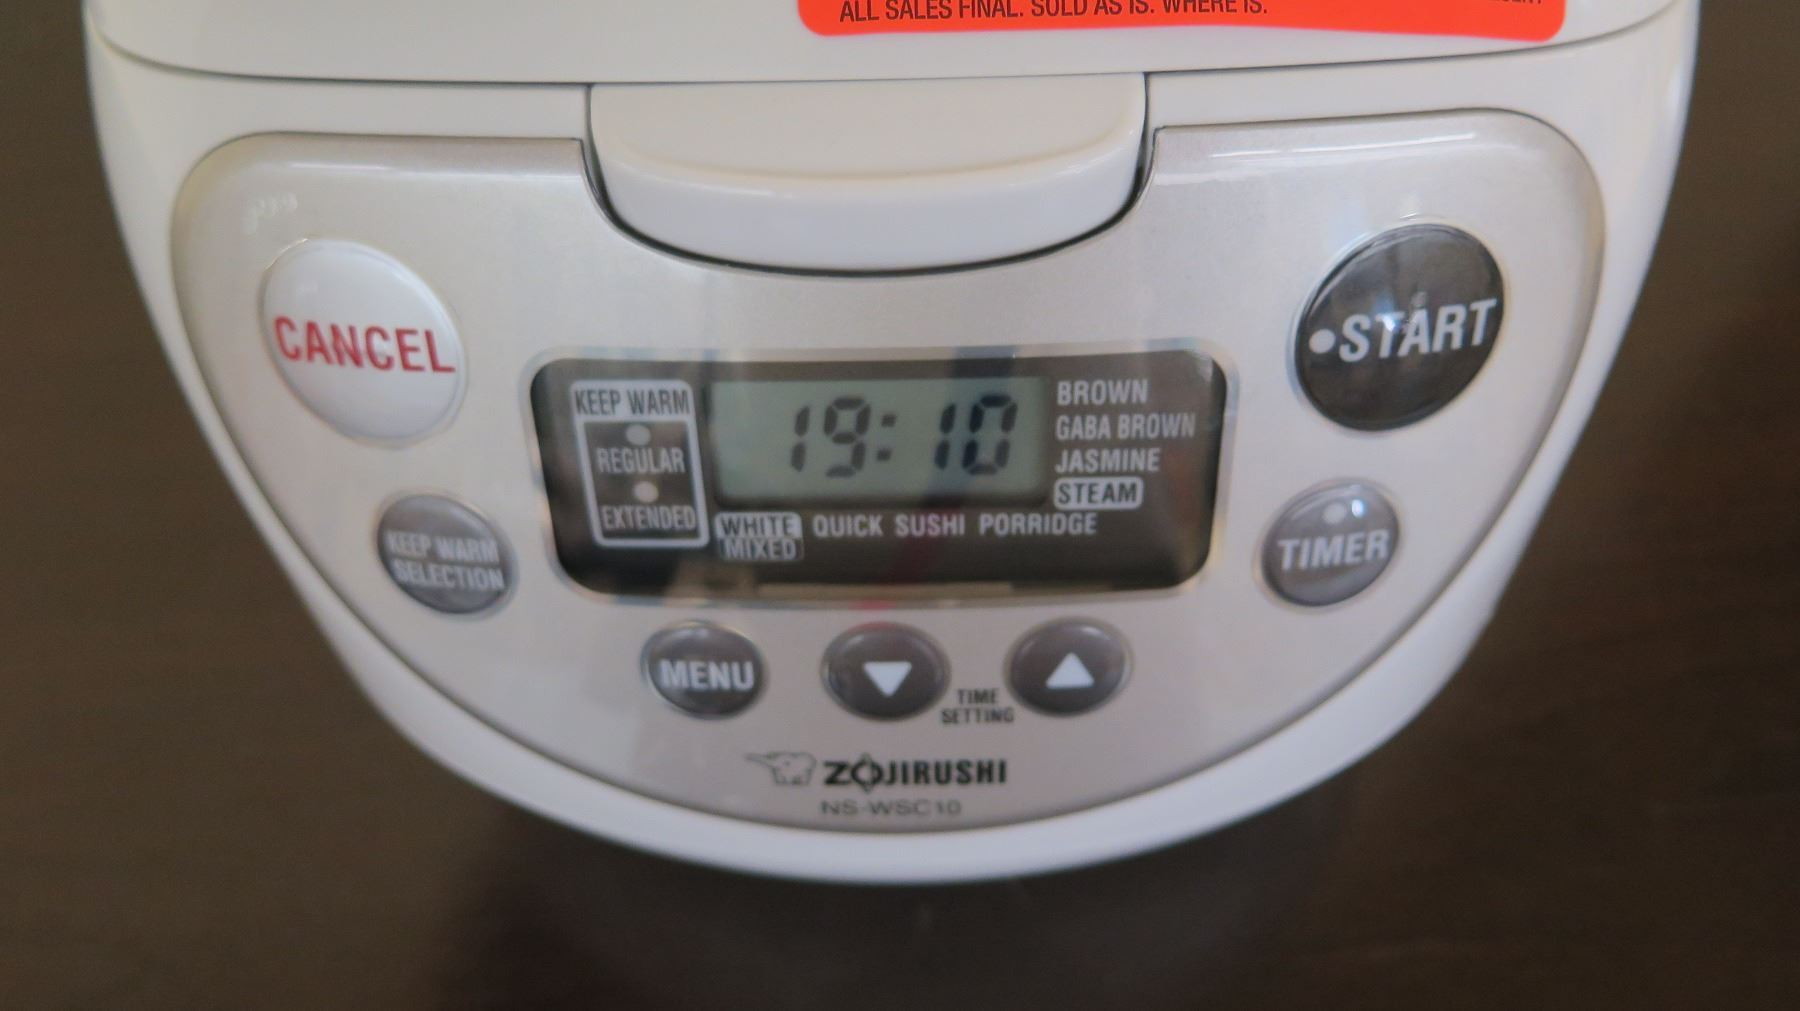 Zojirushi 5-Cup Rice Cooker/Warmer, Includes Power Cable - Oahu Auctions